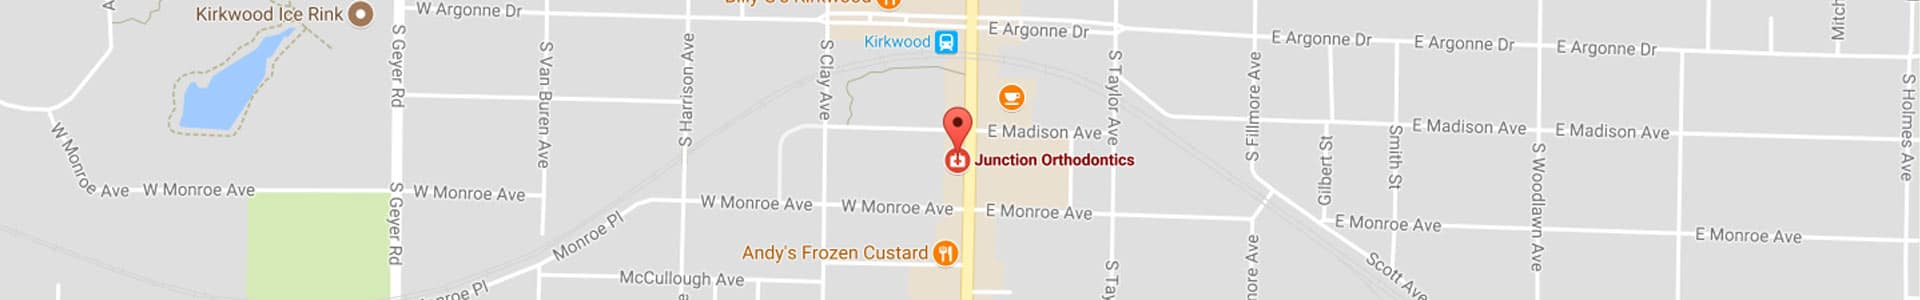 Map Junction Orthodontics in Kirkwood, MO